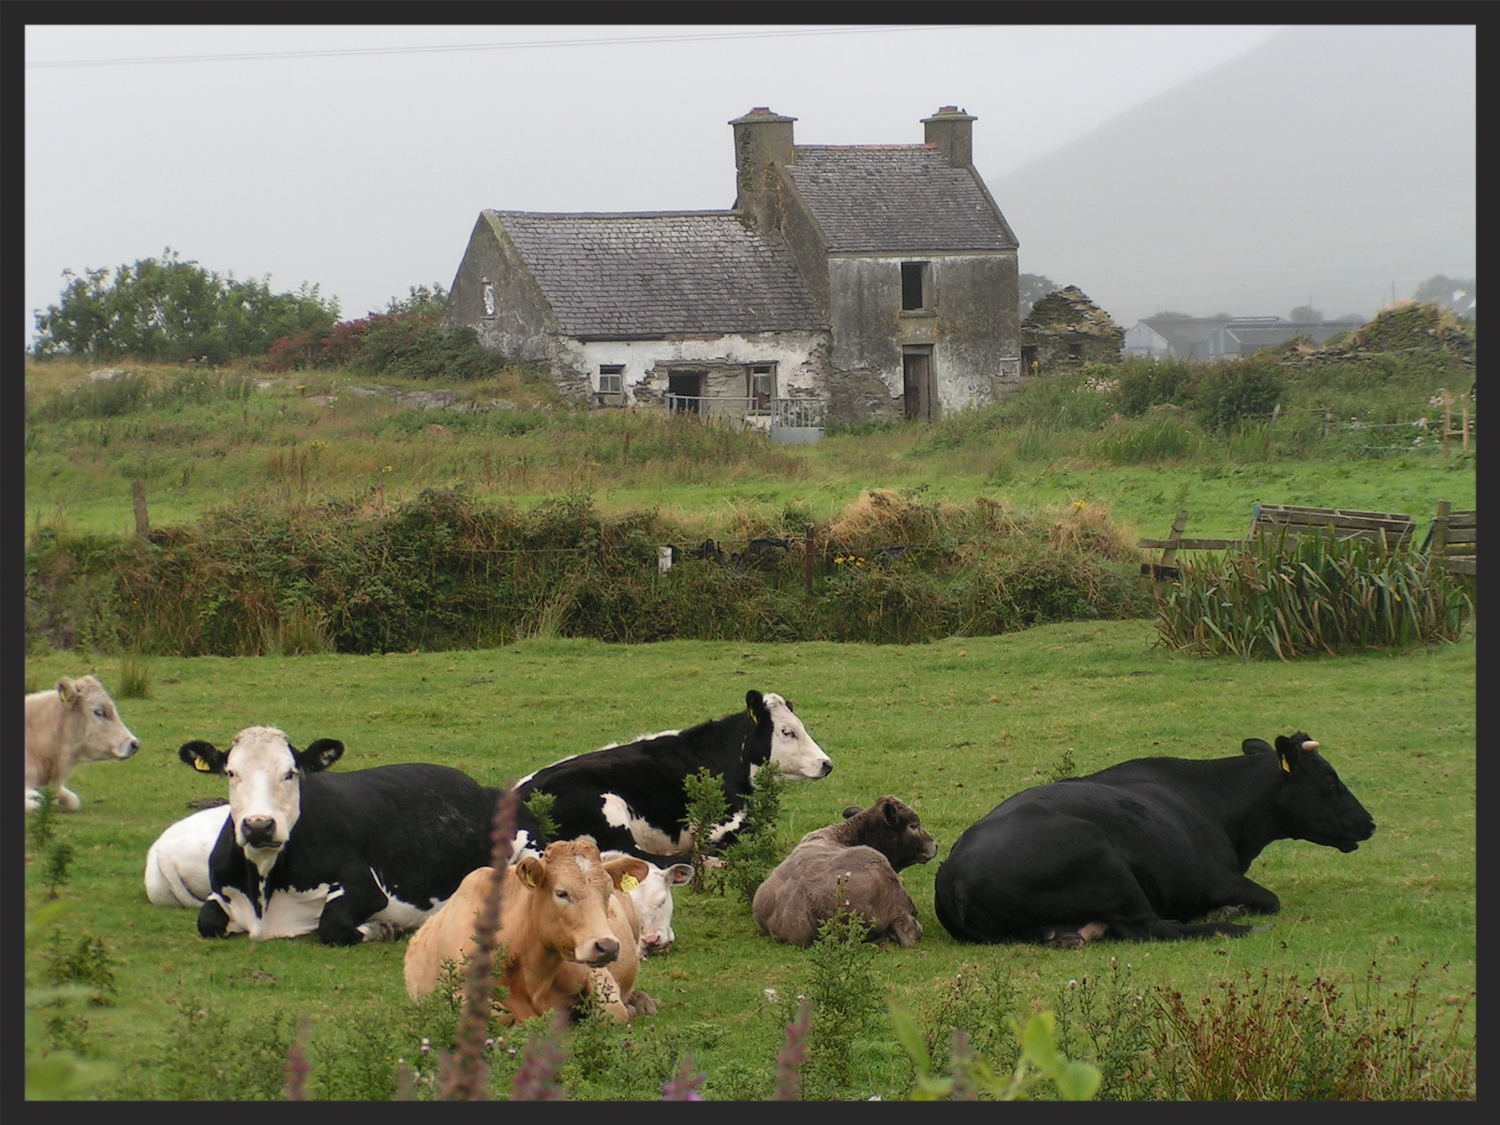 DERELICT WITH COWS